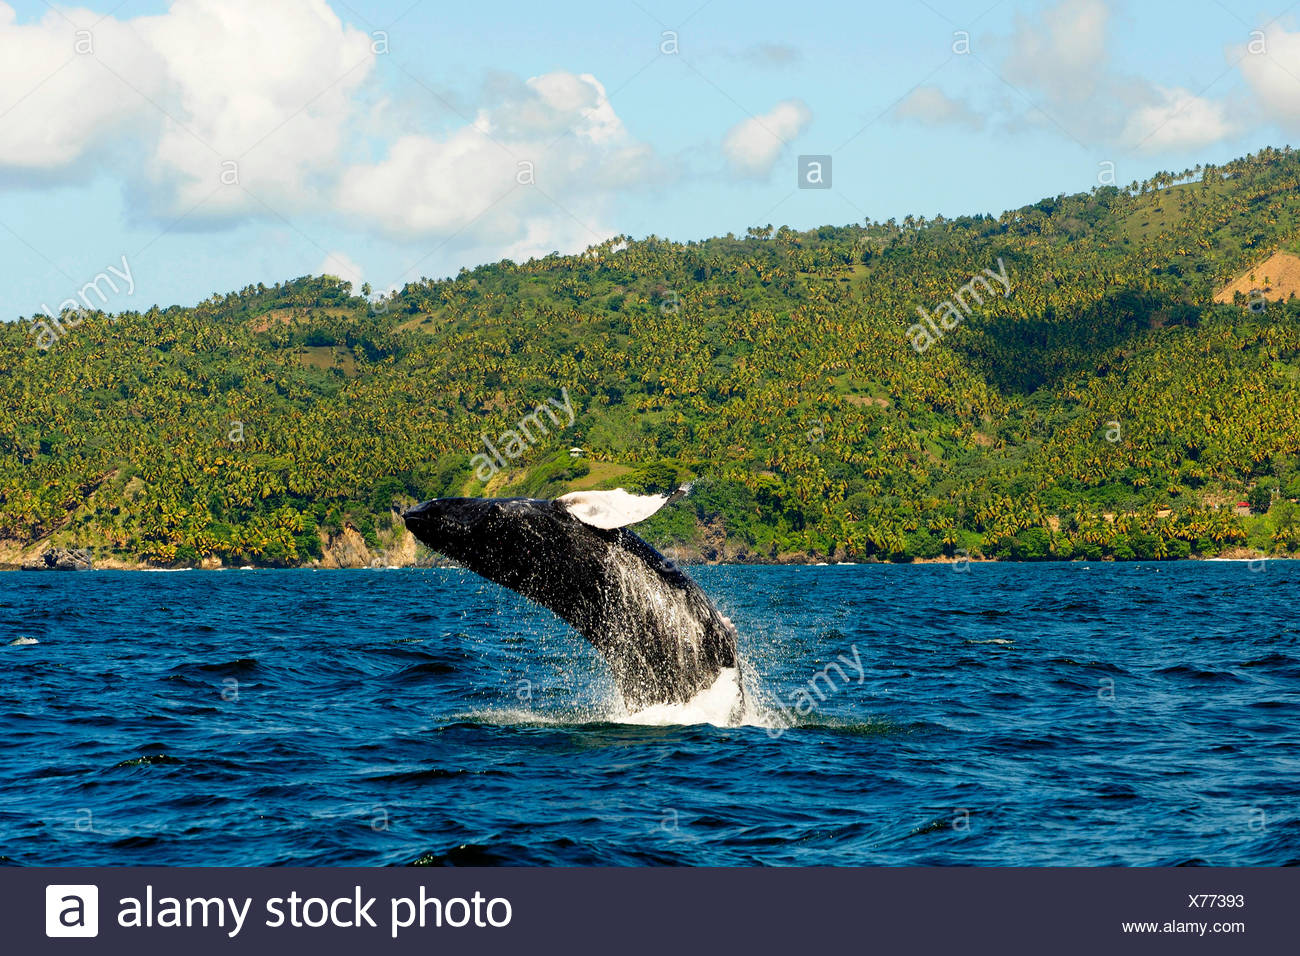 humpback whale (Megaptera novaeangliae), humpback whale jumps out of the water, Dominican Republic, Samana - Stock Image